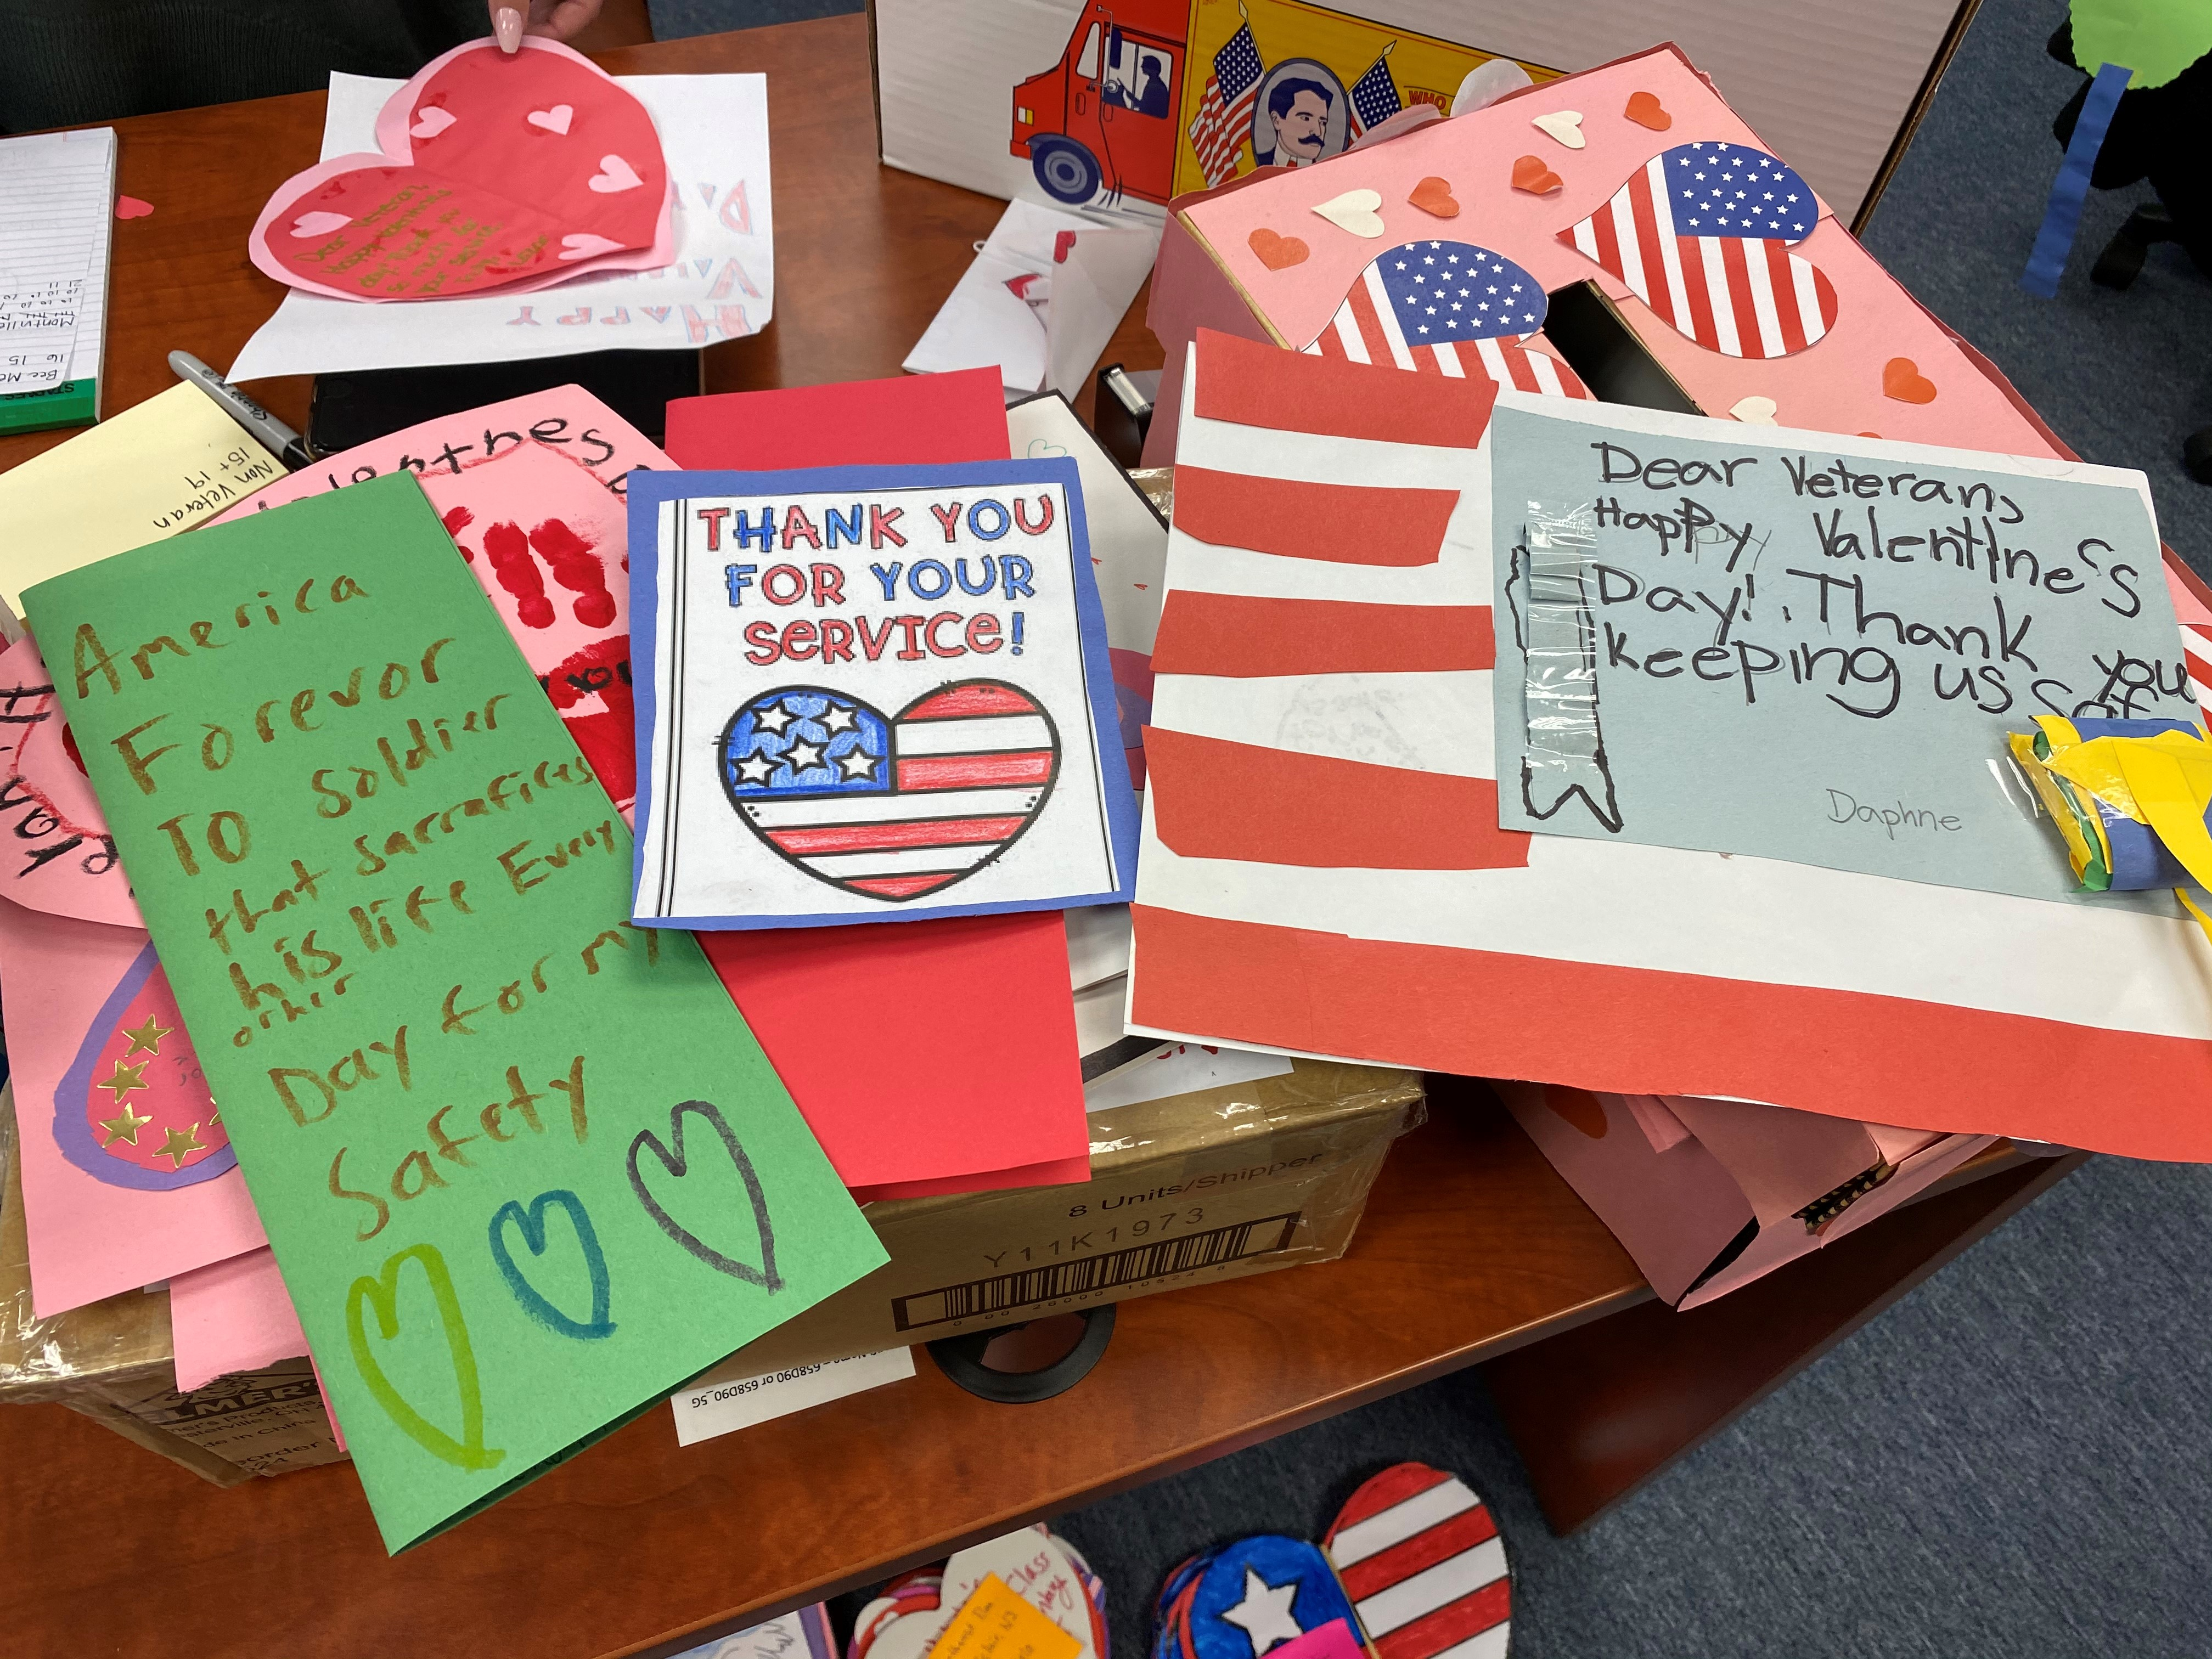 Rep. Sherrill's Office Received More than 4,000 Valentines for Veterans